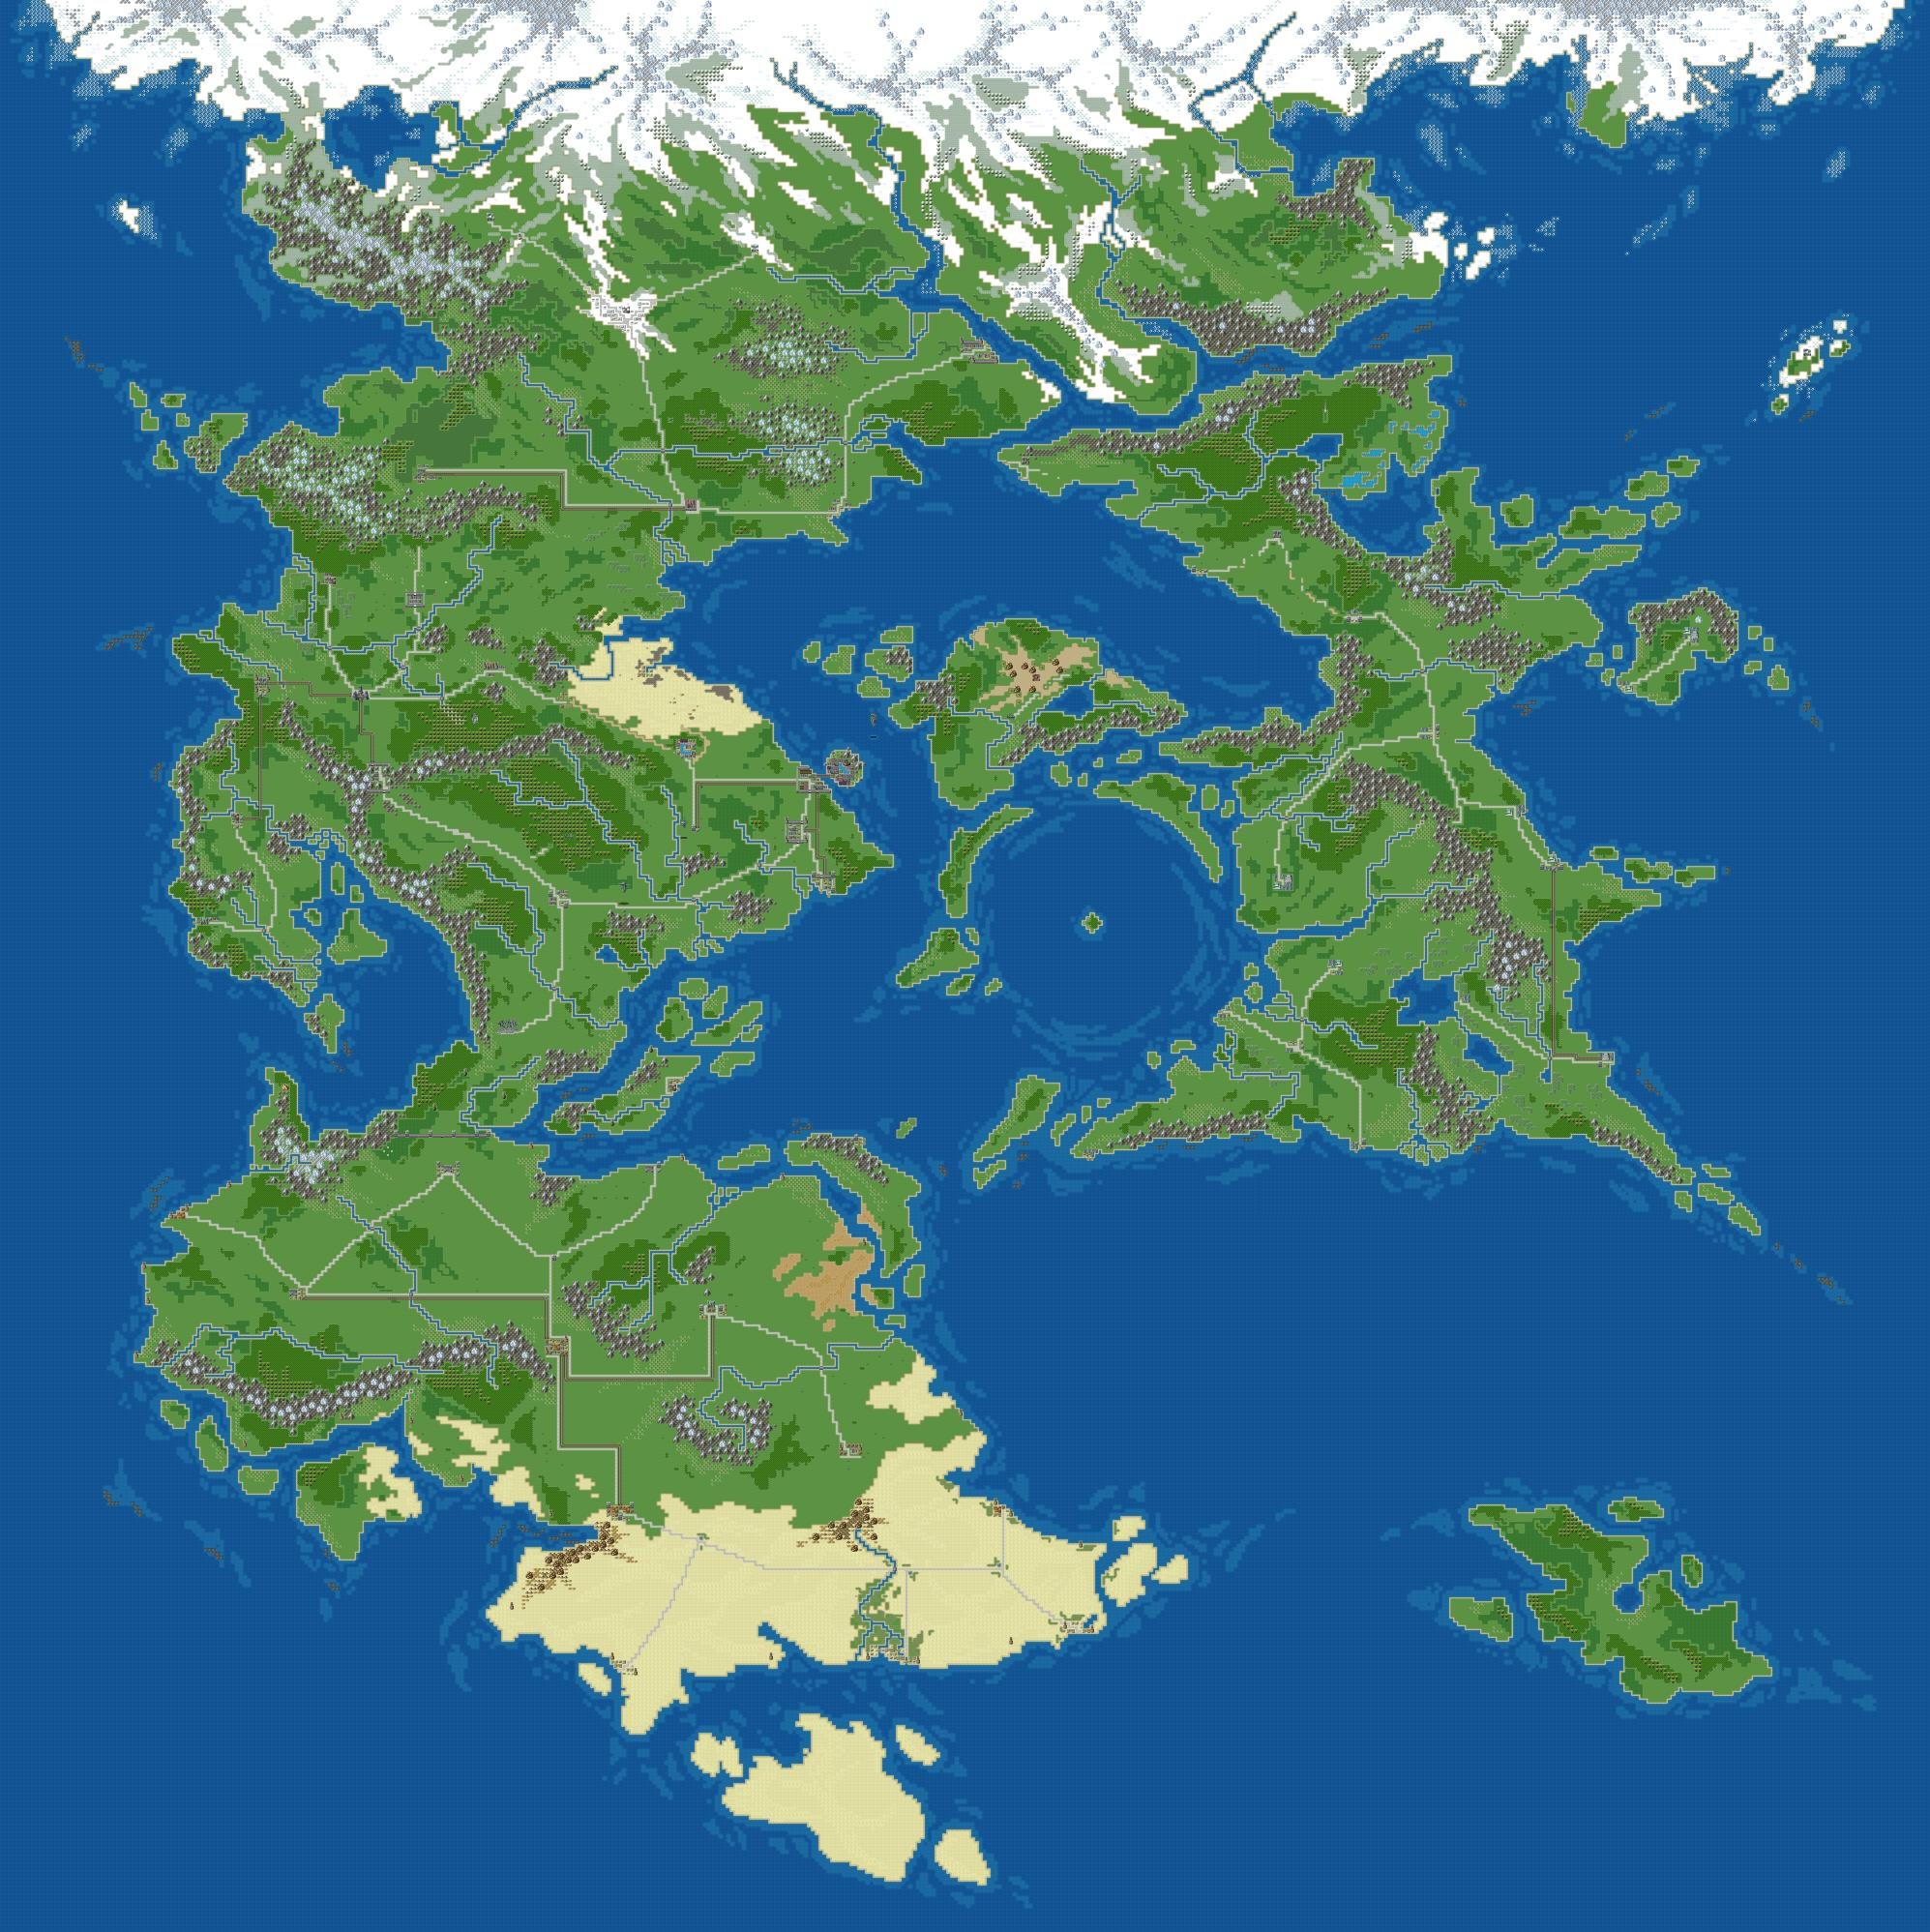 world map generator rpg